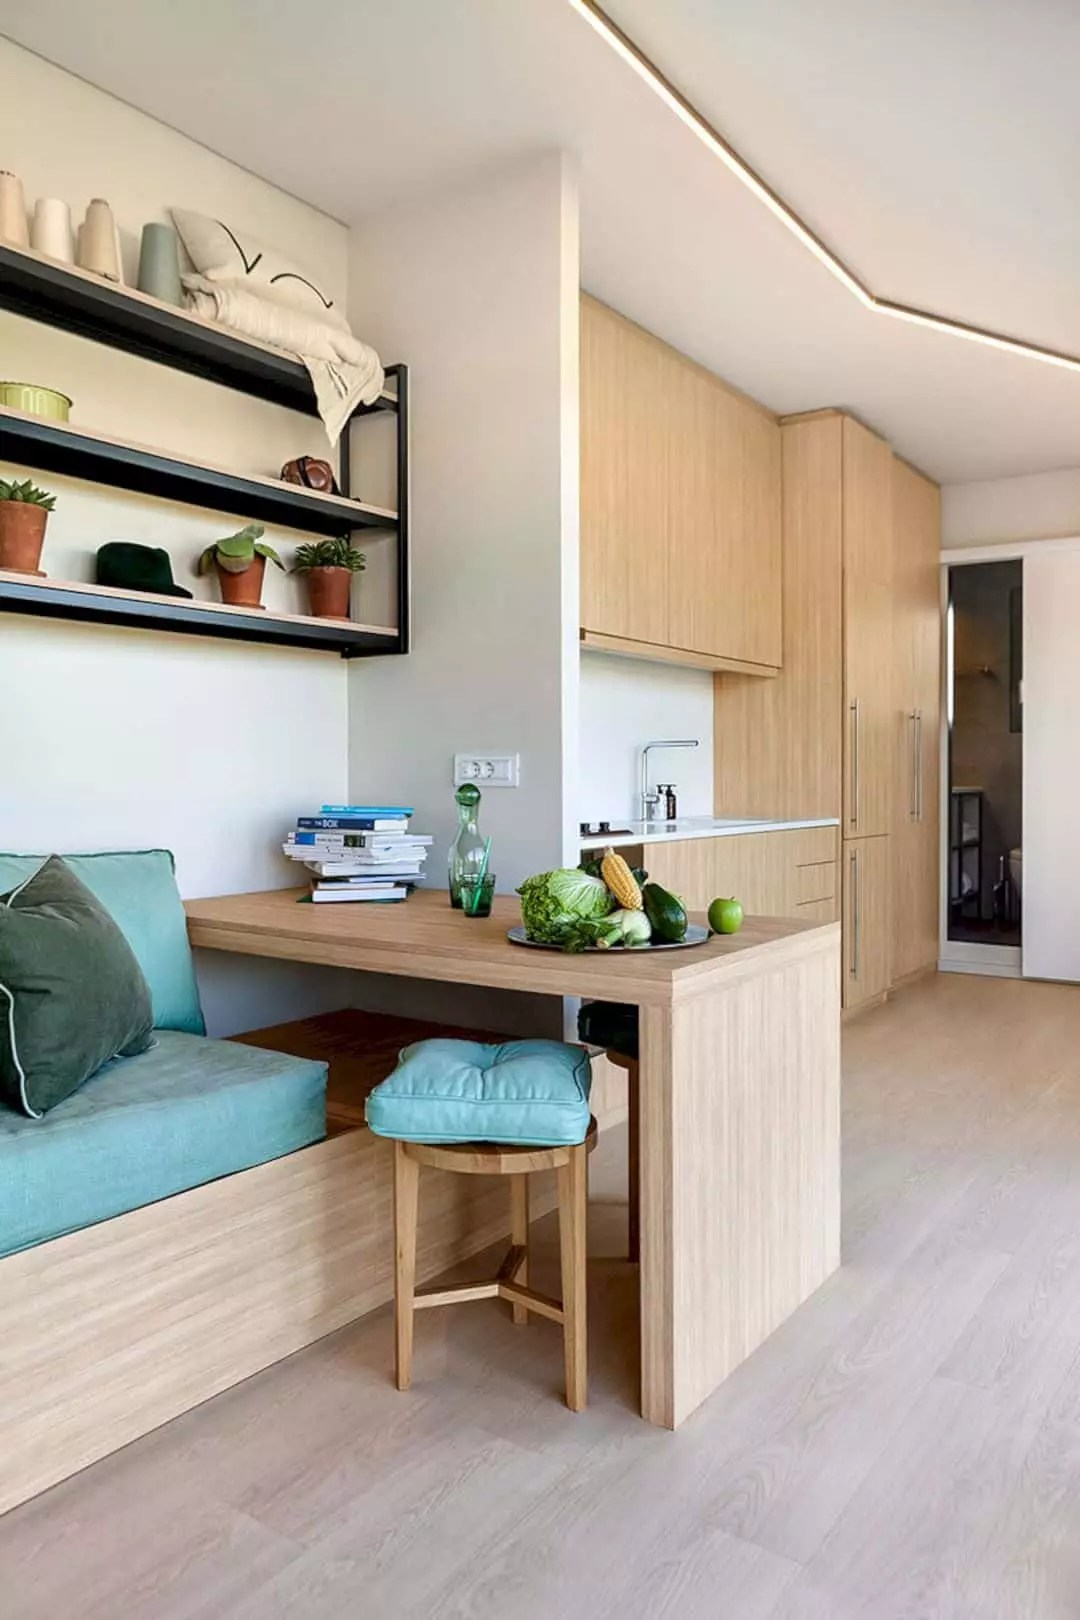 A Modular And Environmentally Friendly Prototype Of A Modern Dwelling 5